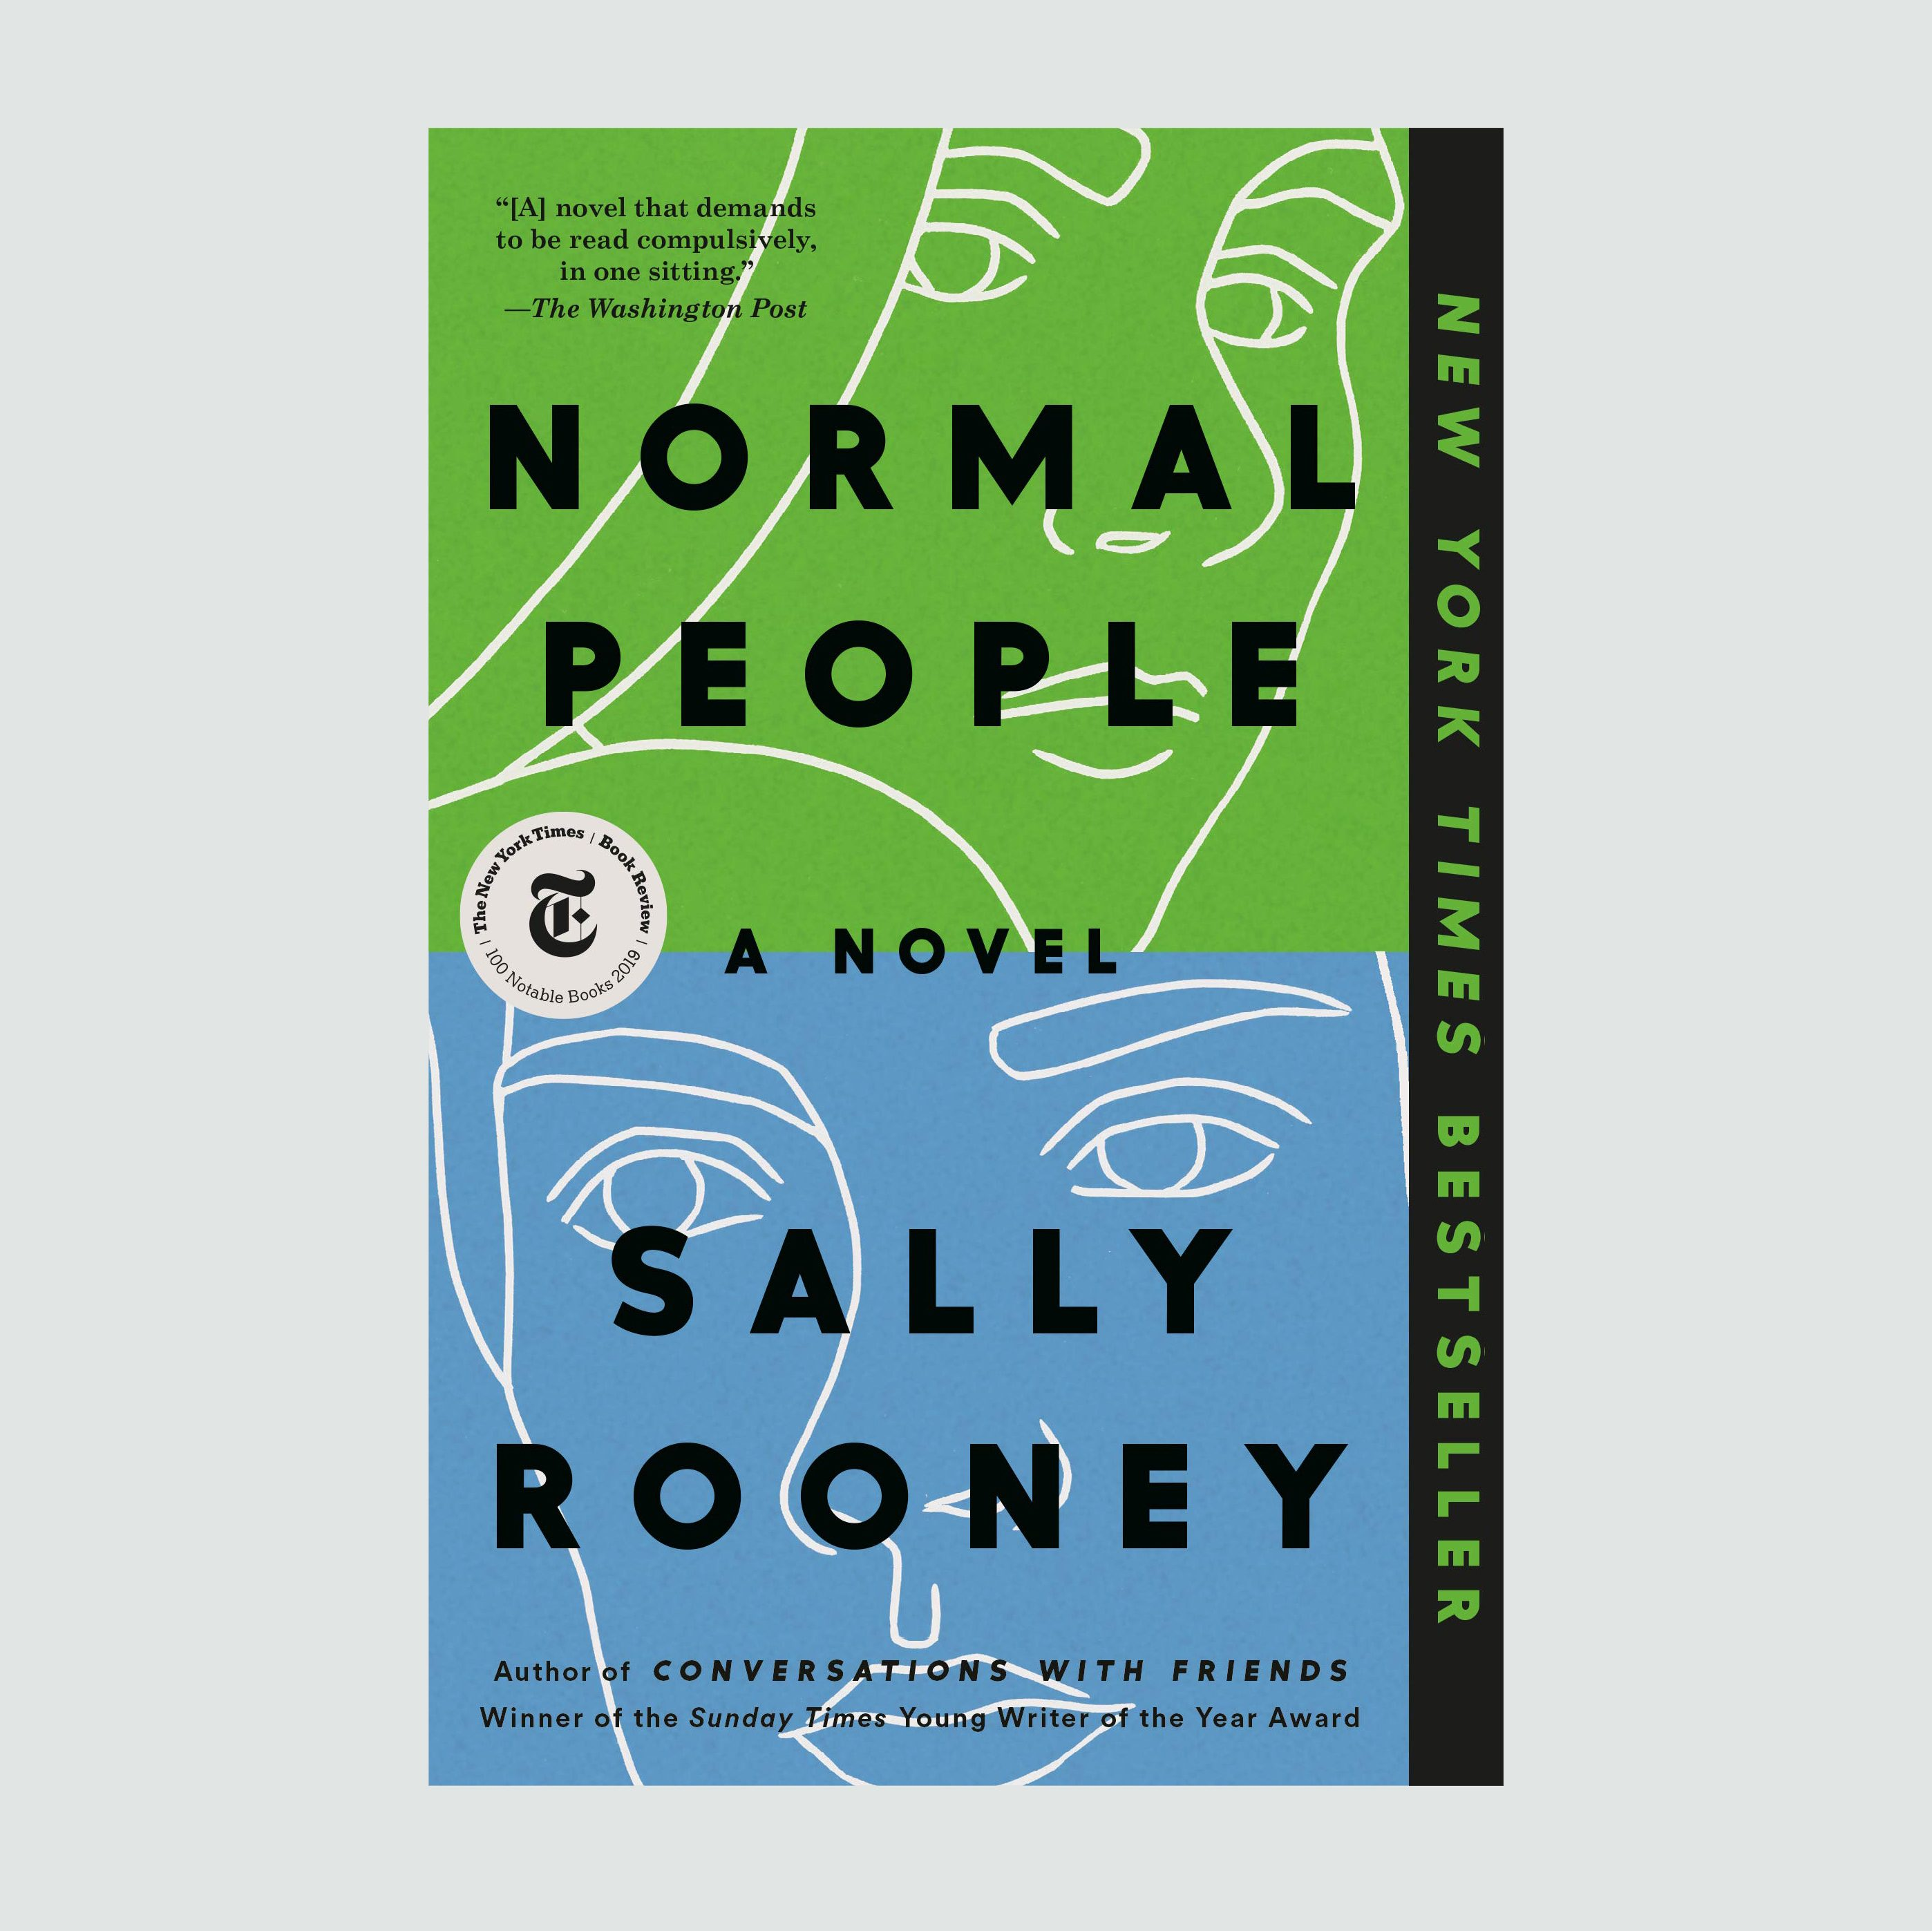 Normal People by Sally Rooney book